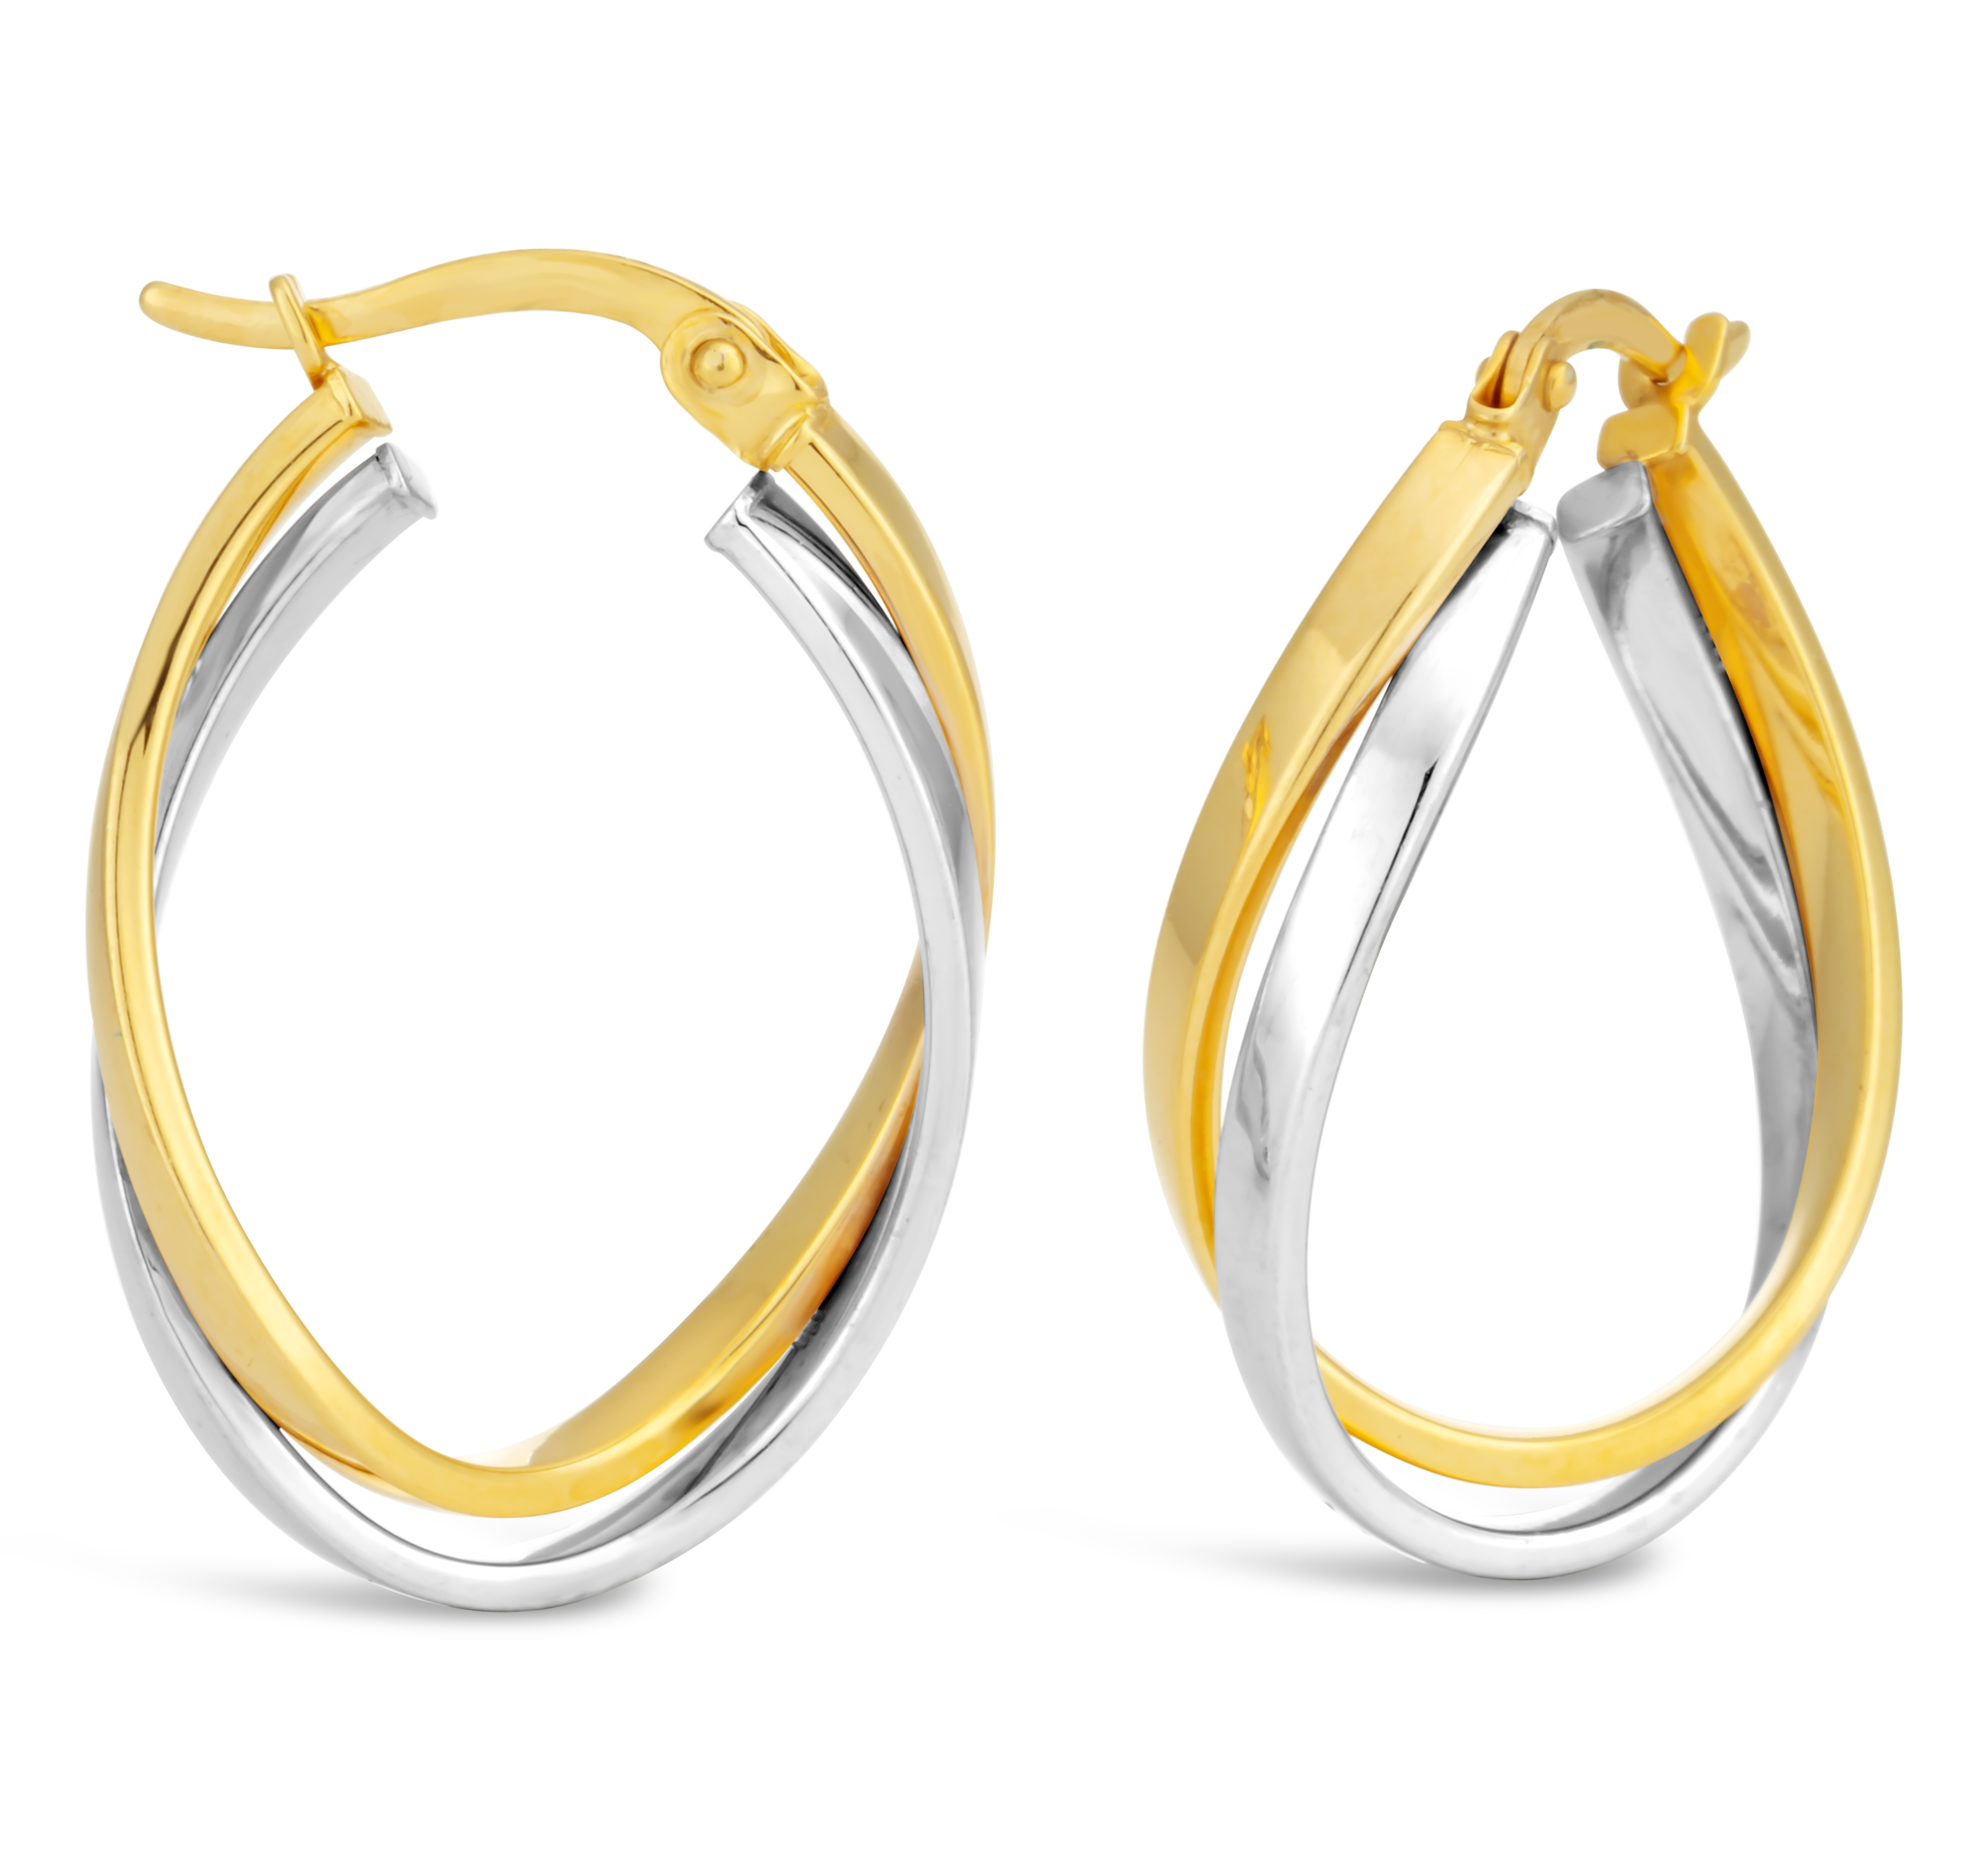 9ct Two-Tone Gold Filled Double Tube Hoop Earrings